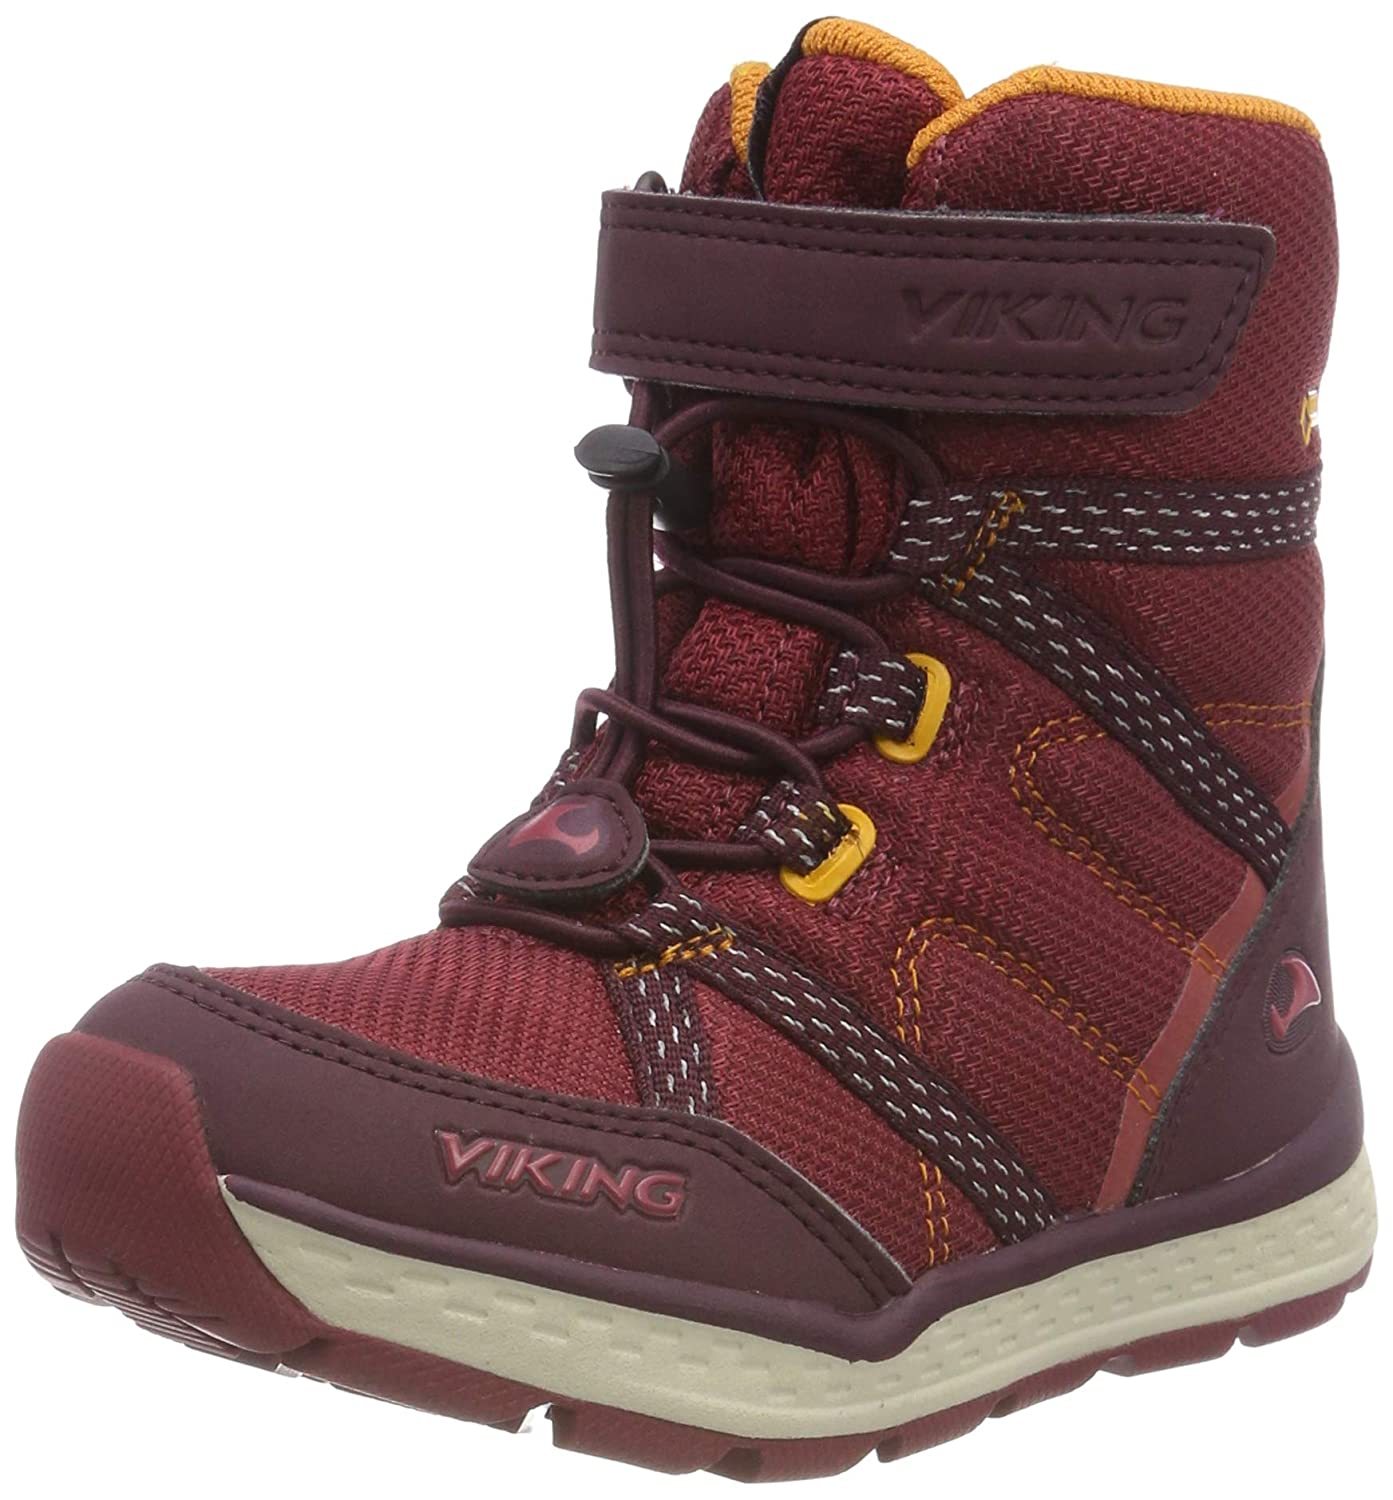 Viking Skomo GTX Jr, Chaussures Multisport Outdoor EU|Rose Mixte Enfant 39 EU|Rose Outdoor (Dark Red/Wine 5241) d46996